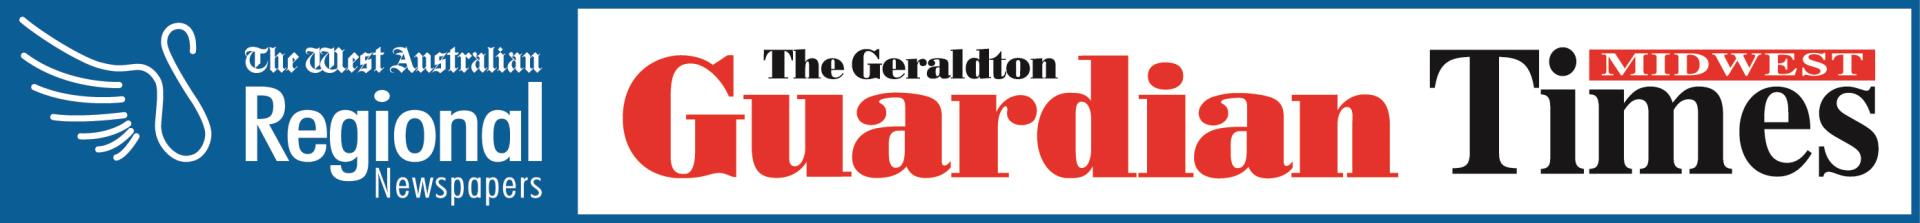 Geraldton Guardian - Midwest Times